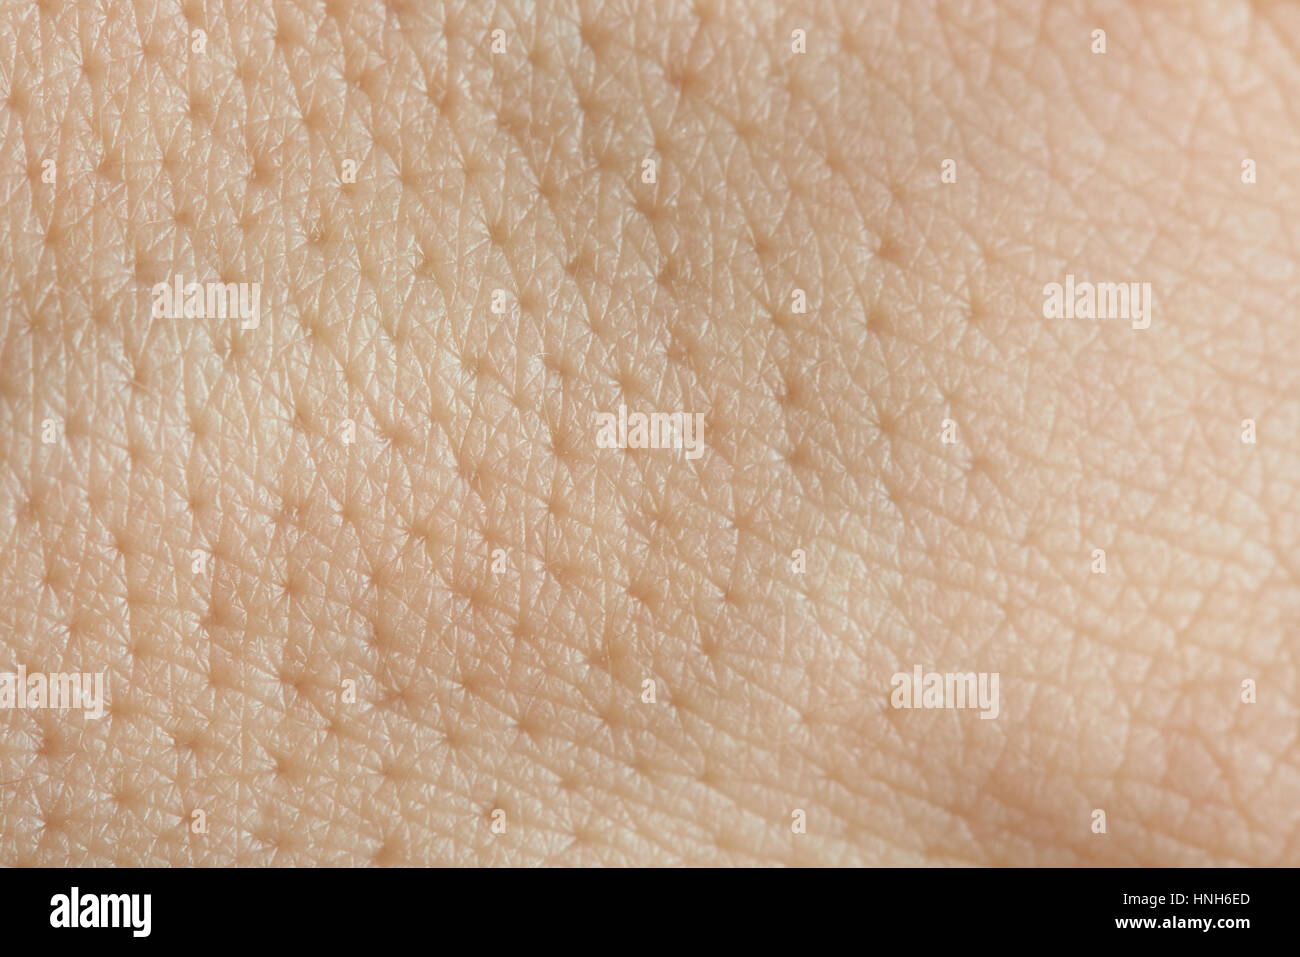 pores on human skin macro up of caucasian skin with holls stock photo royalty free image pores on human skin macro up of caucasian skin with holls stock photo royalty free image